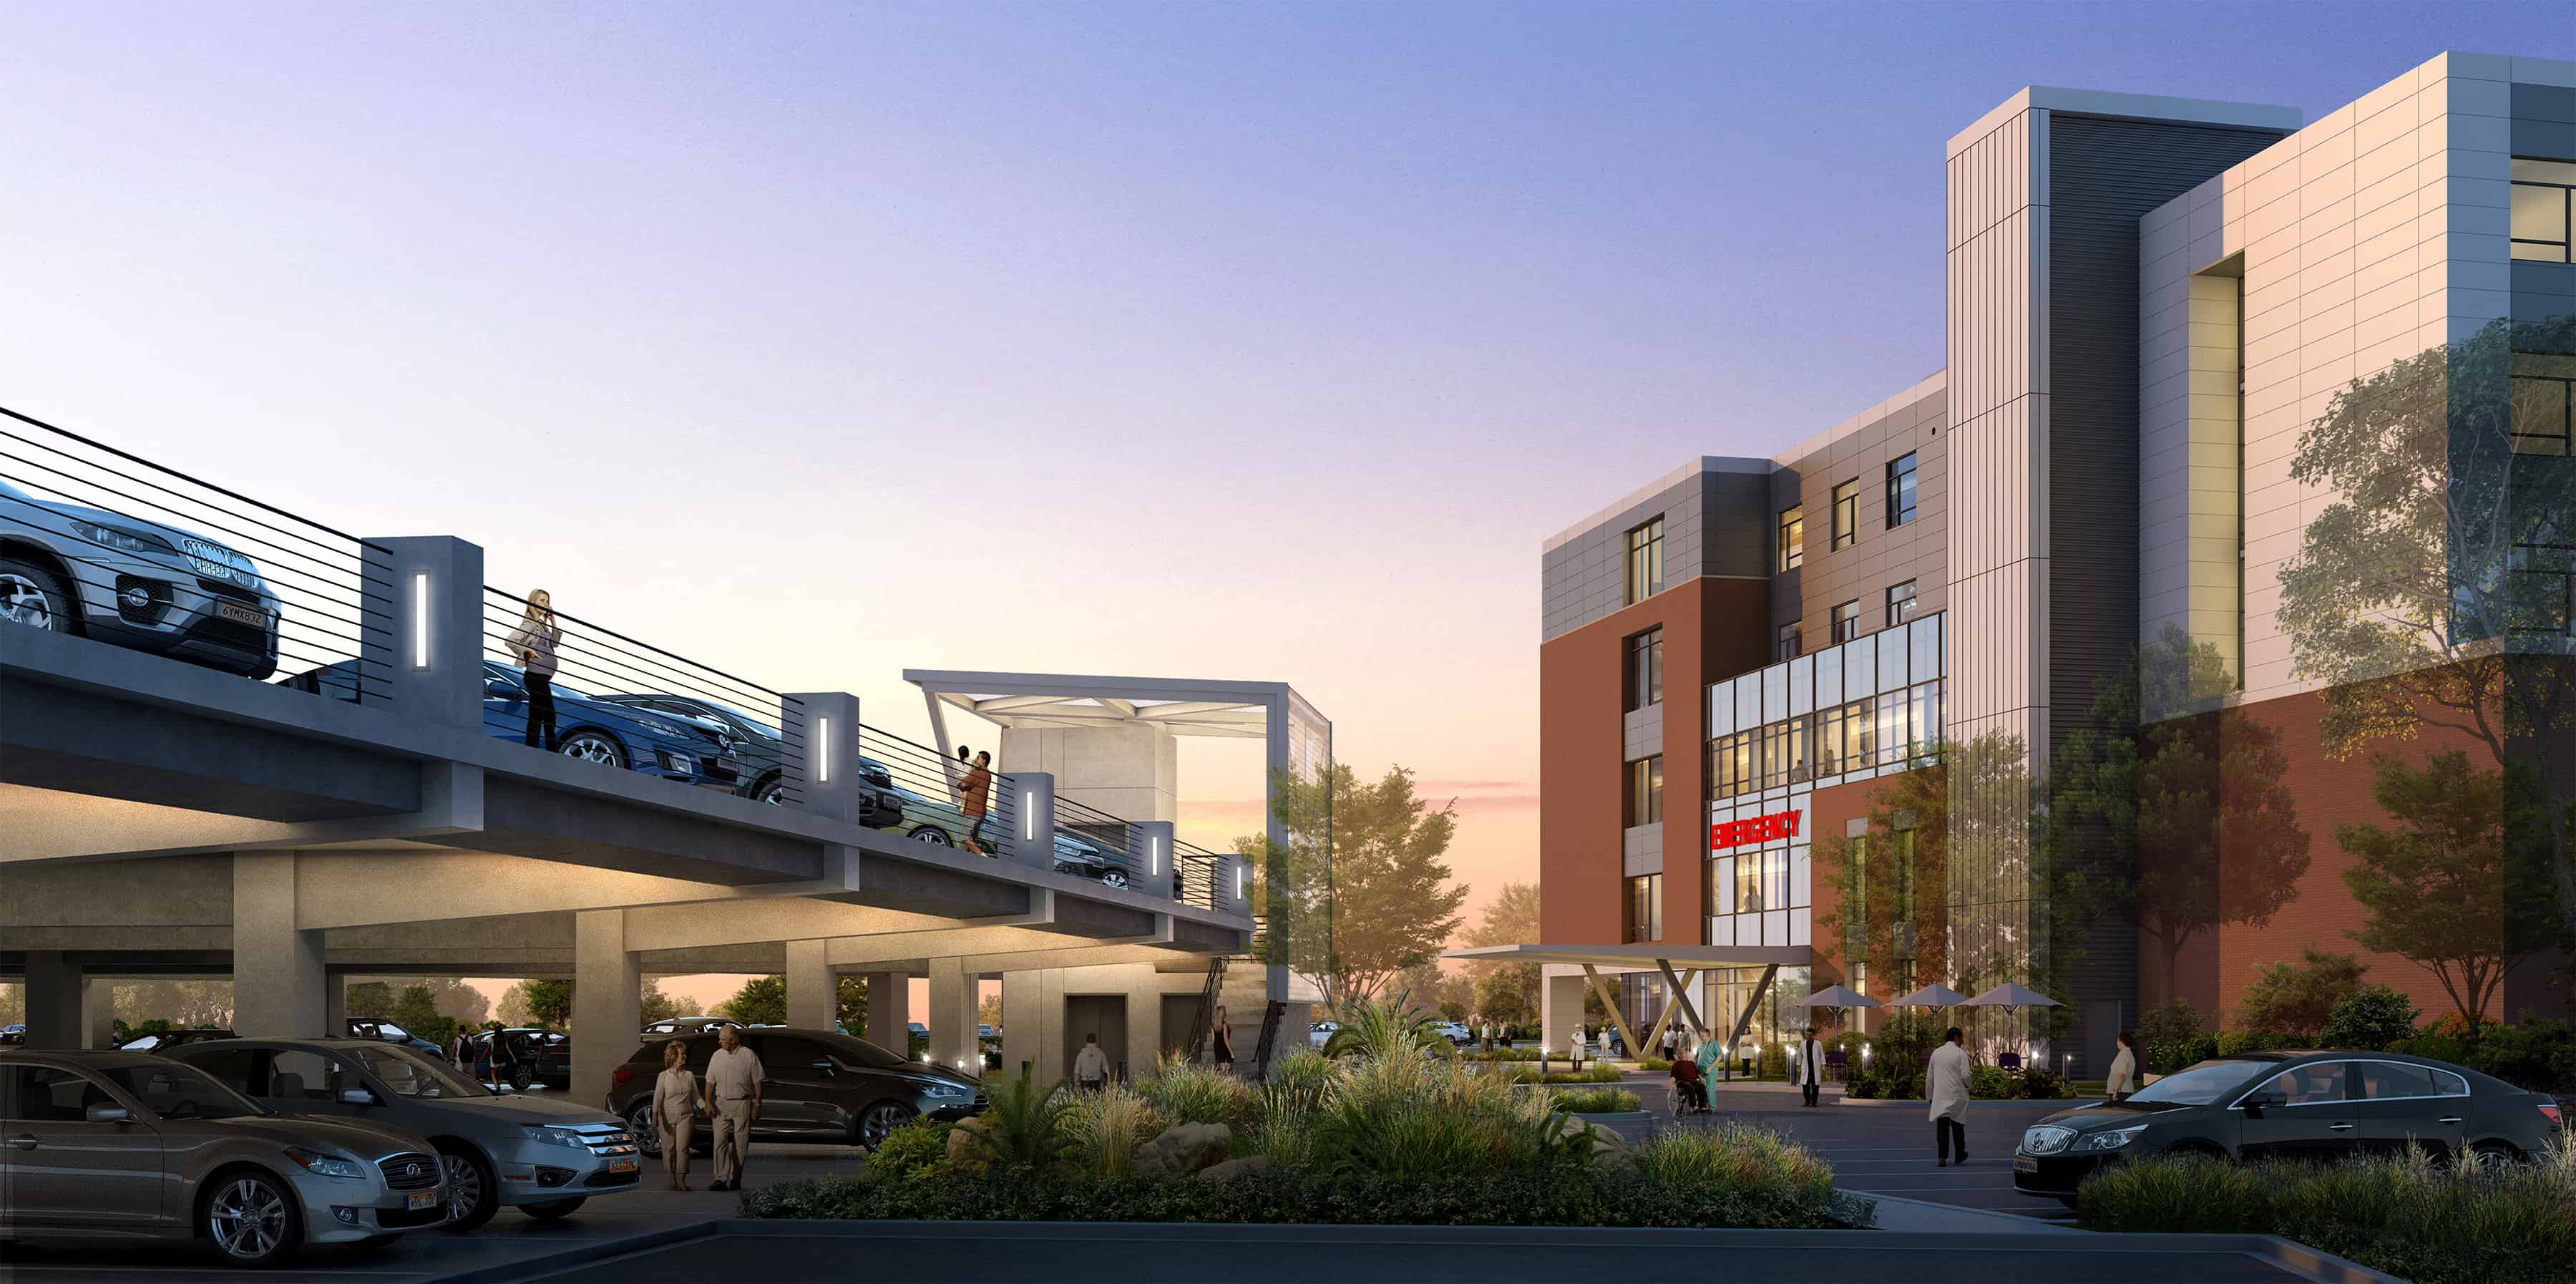 DesignGroup announces state-of-the-art 172,000-square-foot addition for Norton Brownsboro Hospital in Louisville, Kentucky